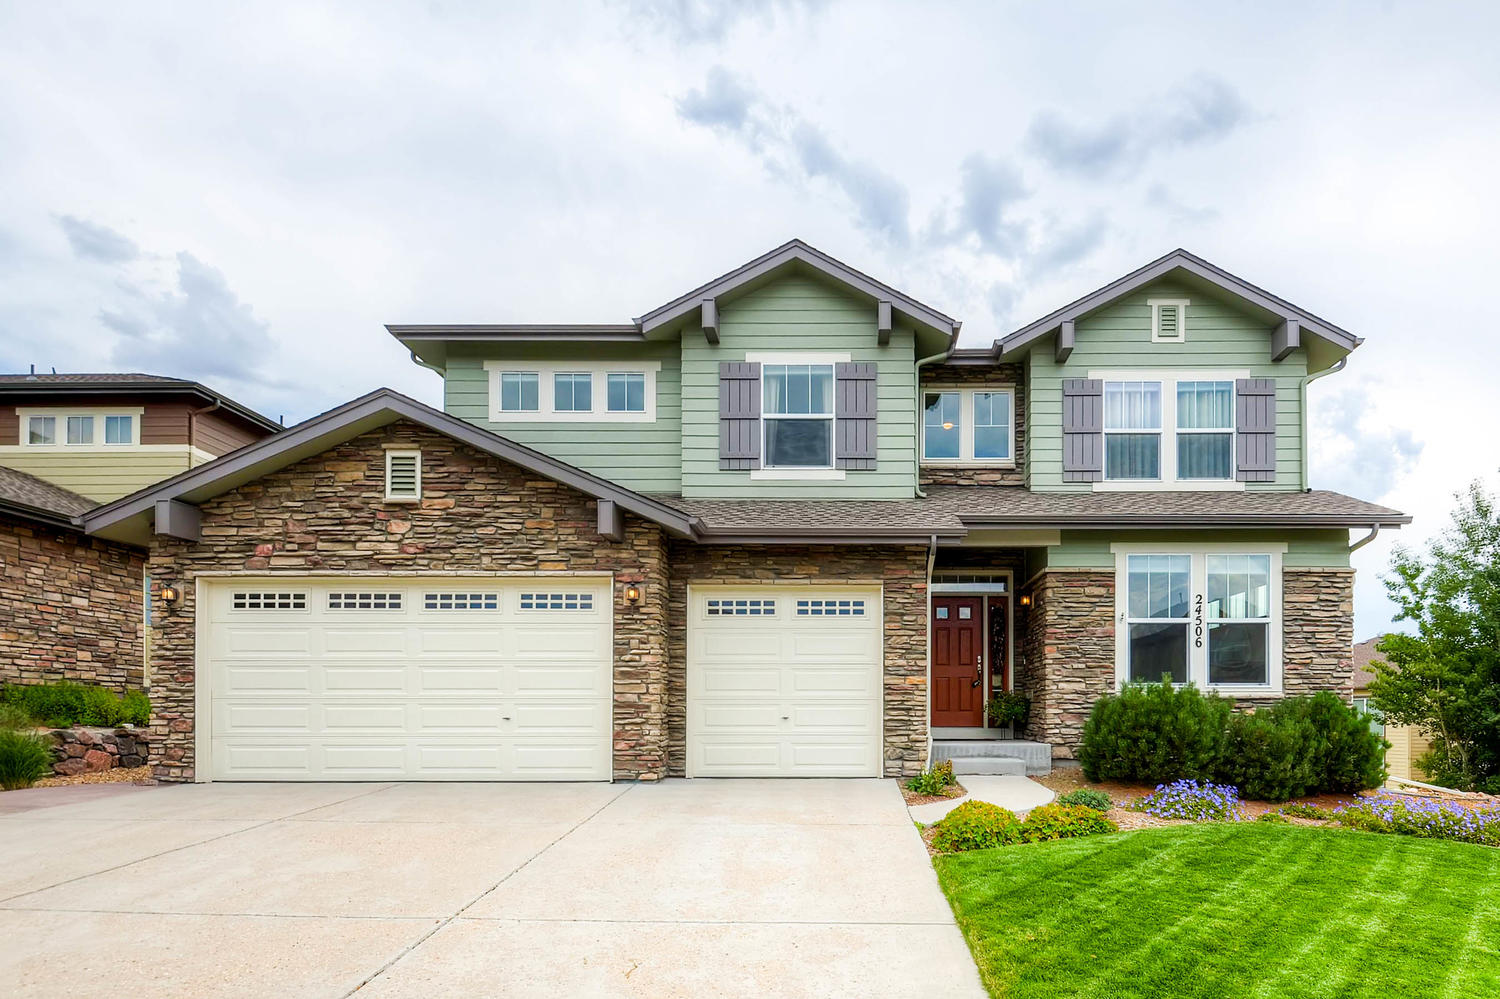 Beautiful two story home in Tallyns Reach